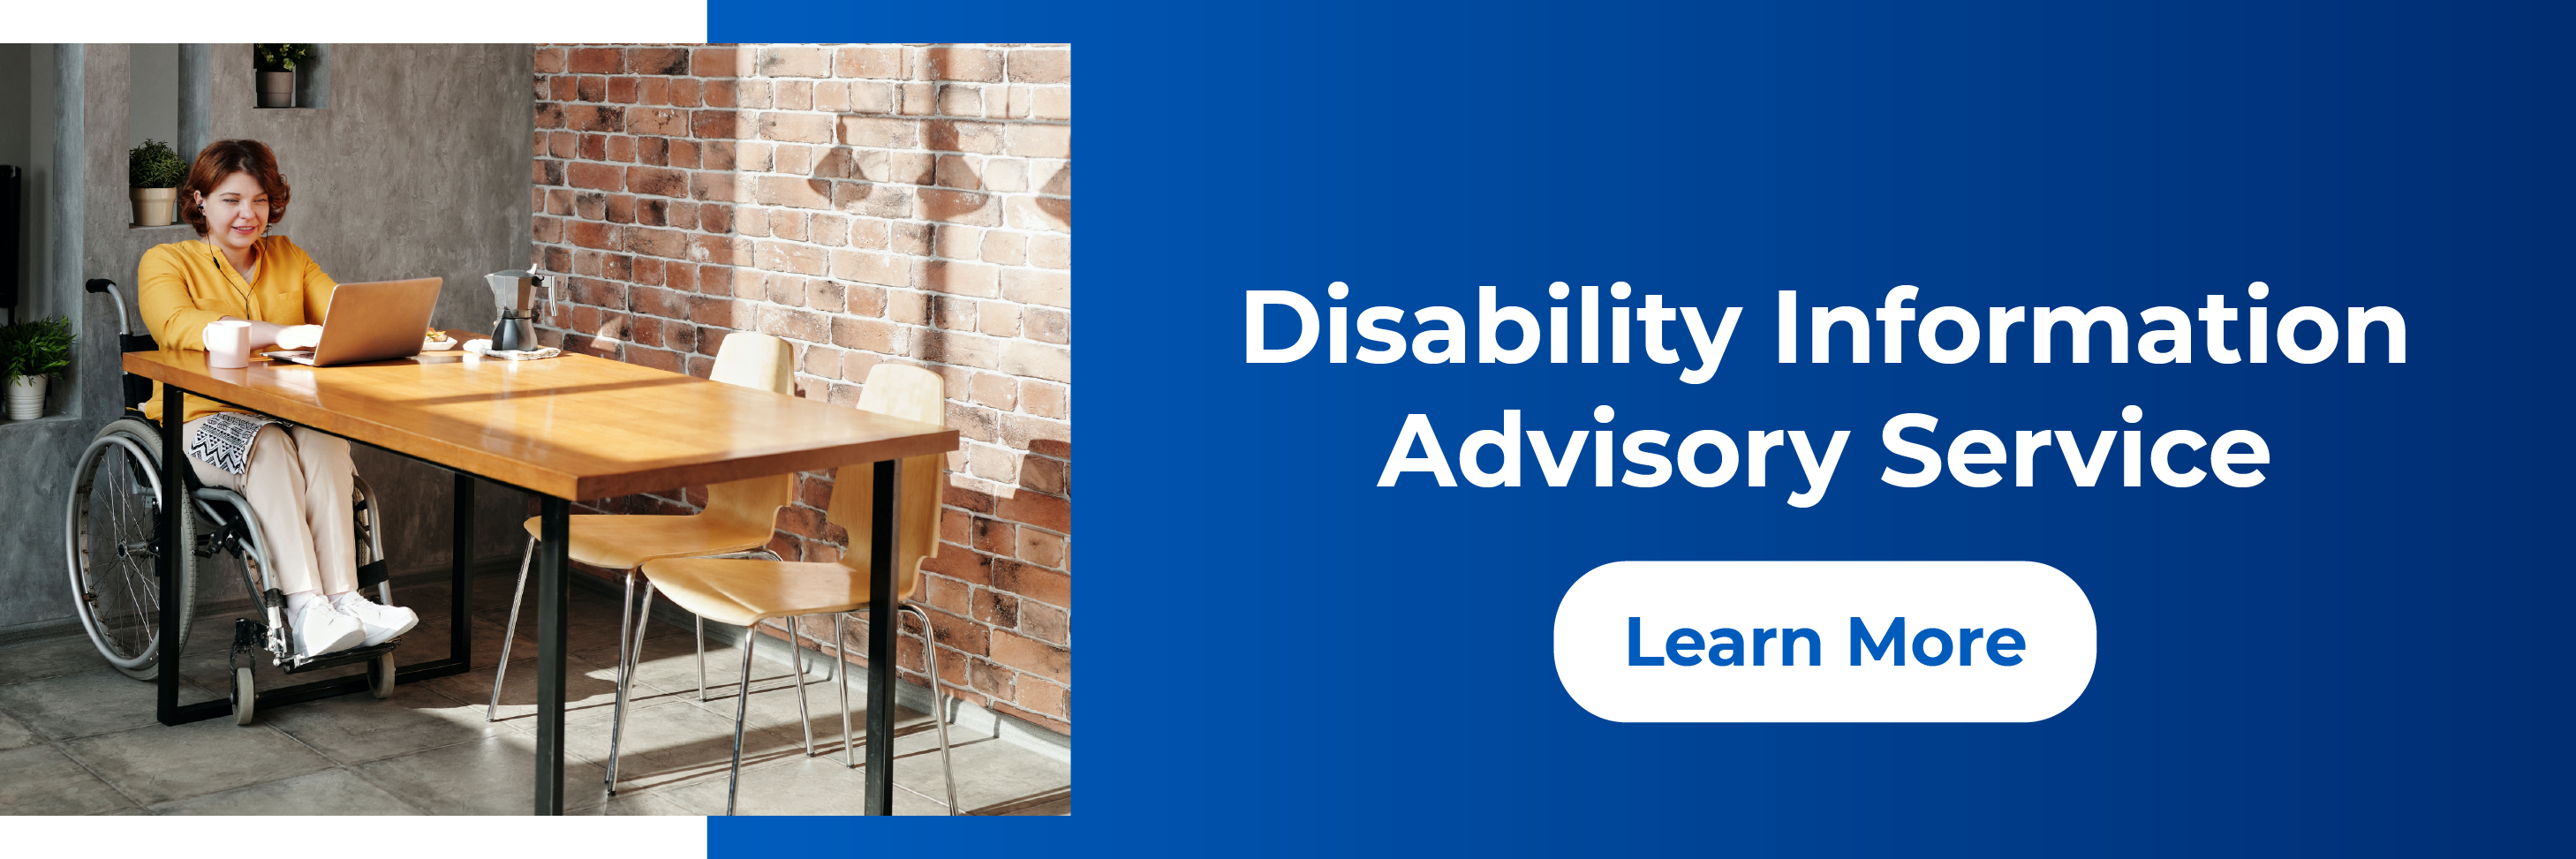 Disability Information Advisory Services